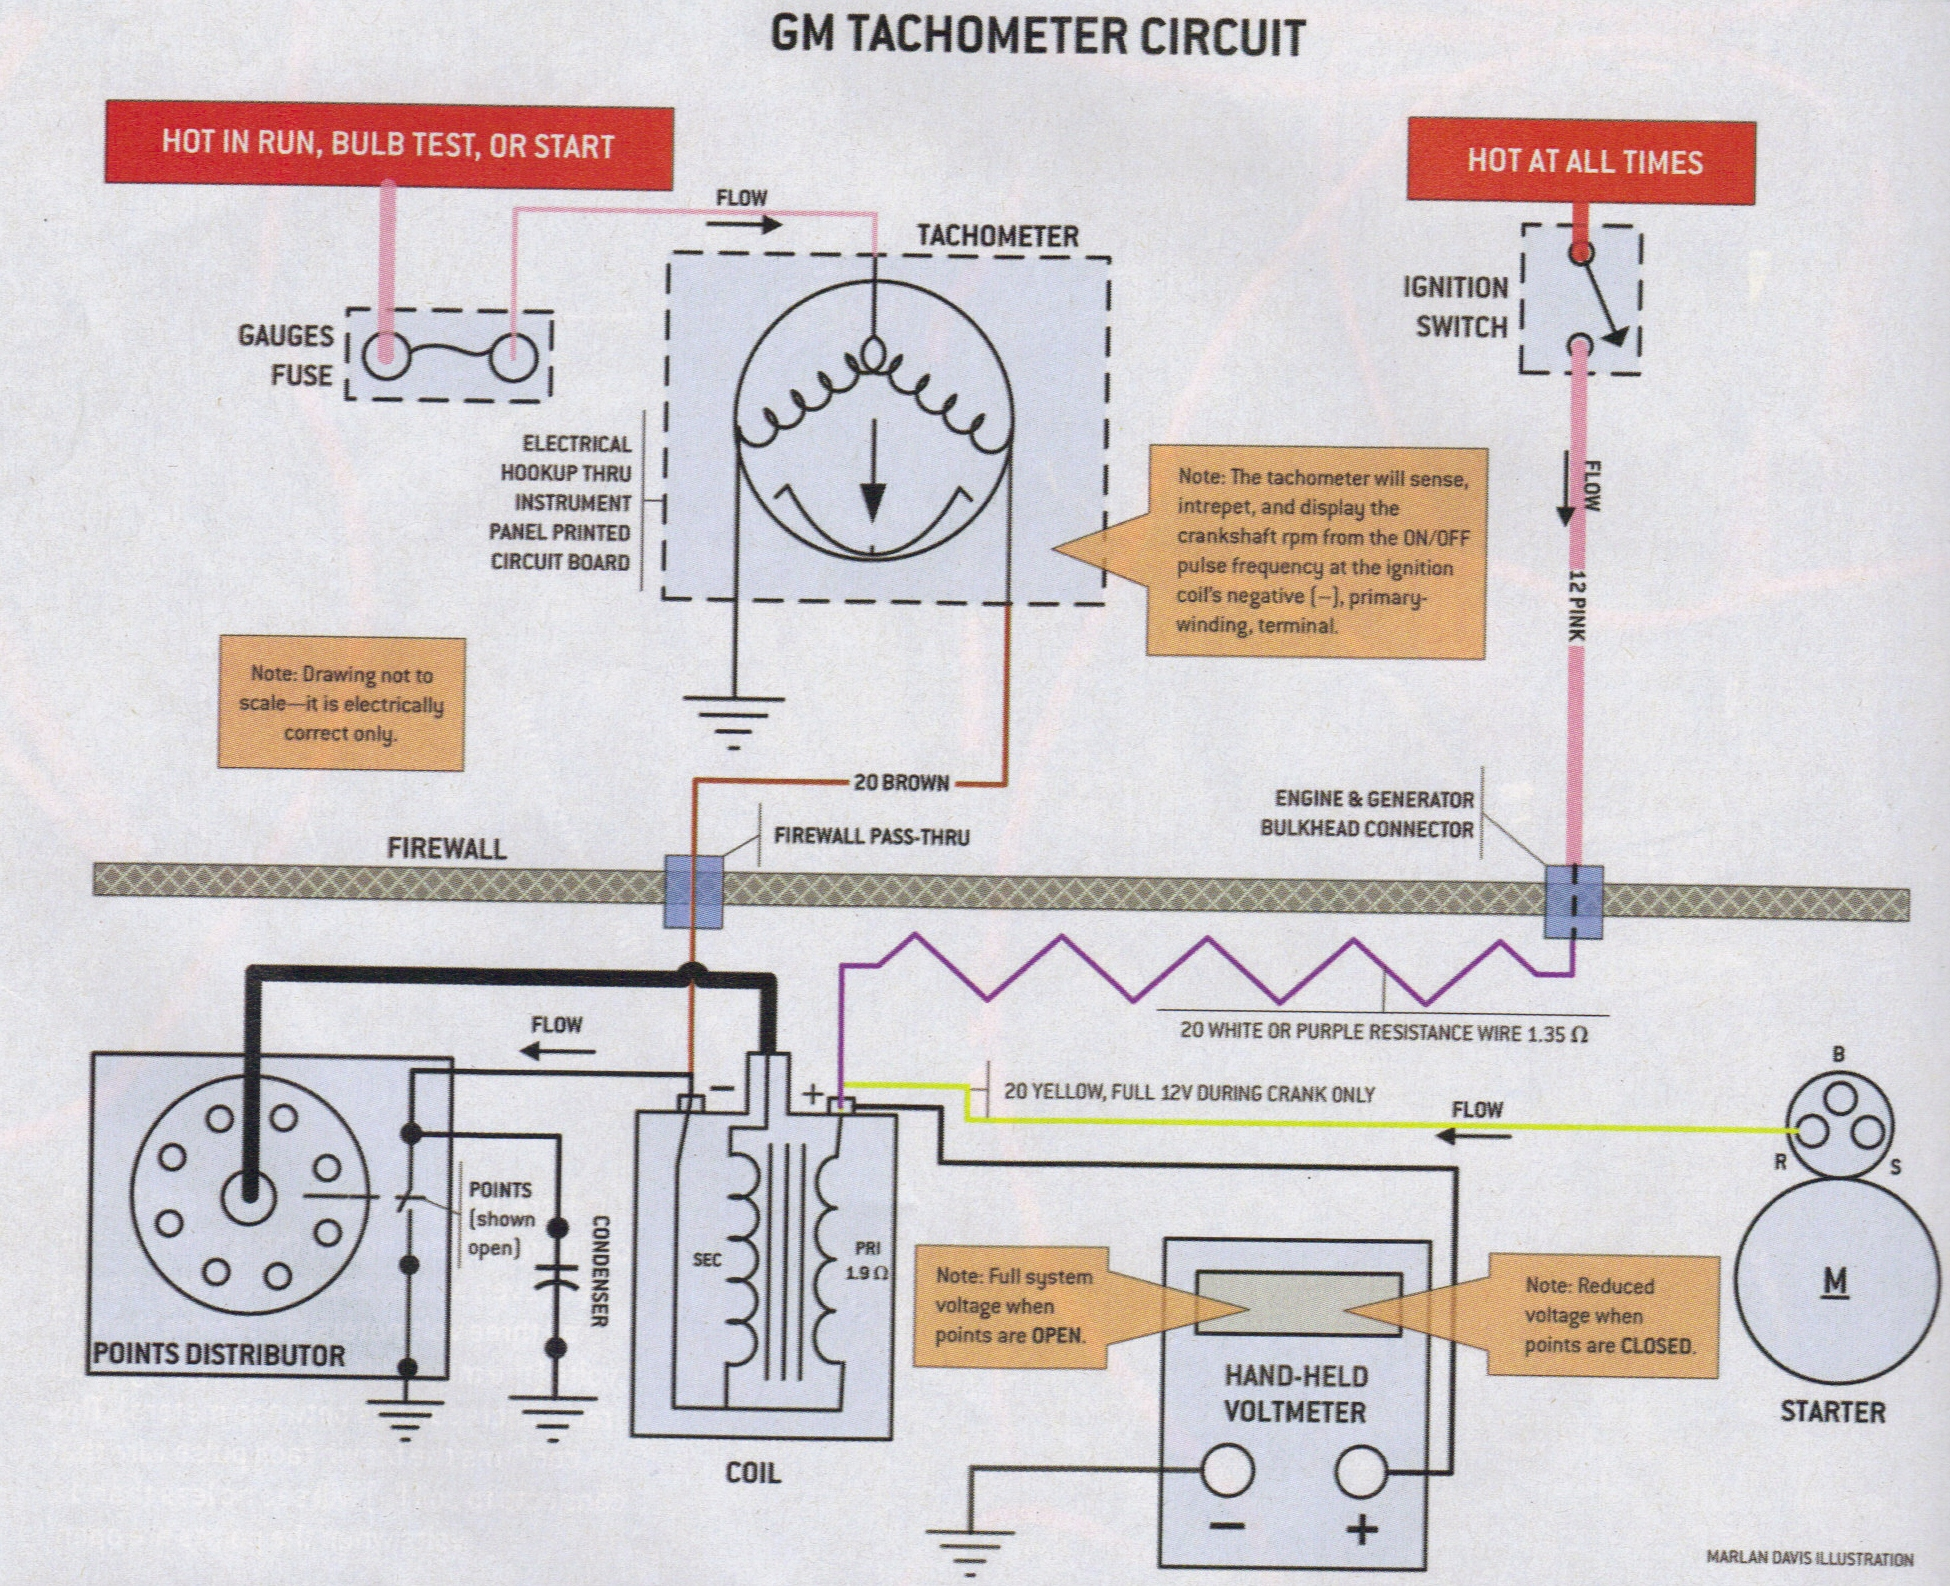 Gm Tach Wiring on power window wiring diagram